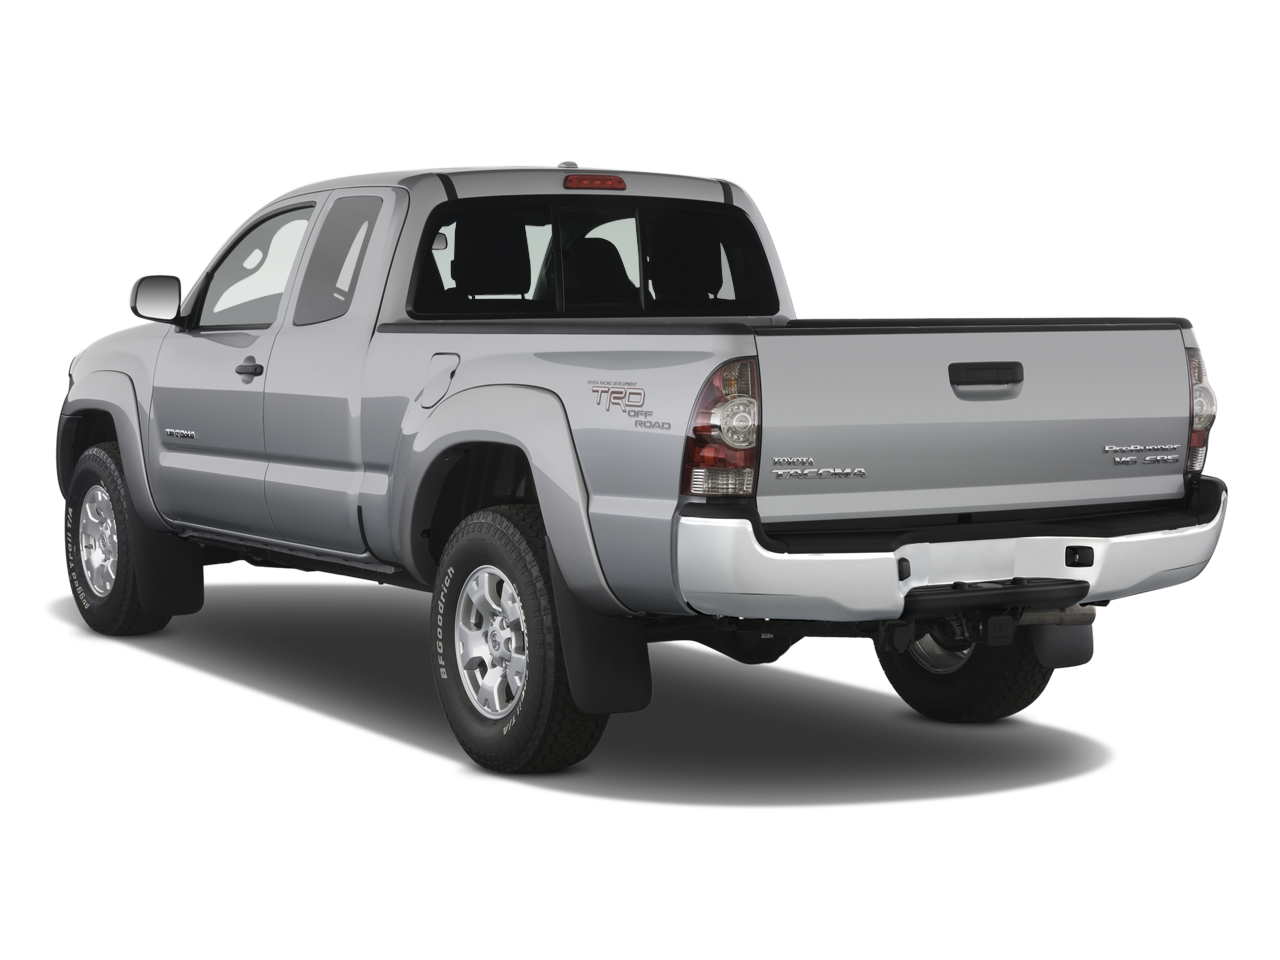 2009 toyota tacoma double cab 4x4 v 6 sr5 trd toyota midsize pickup truck review automobile. Black Bedroom Furniture Sets. Home Design Ideas